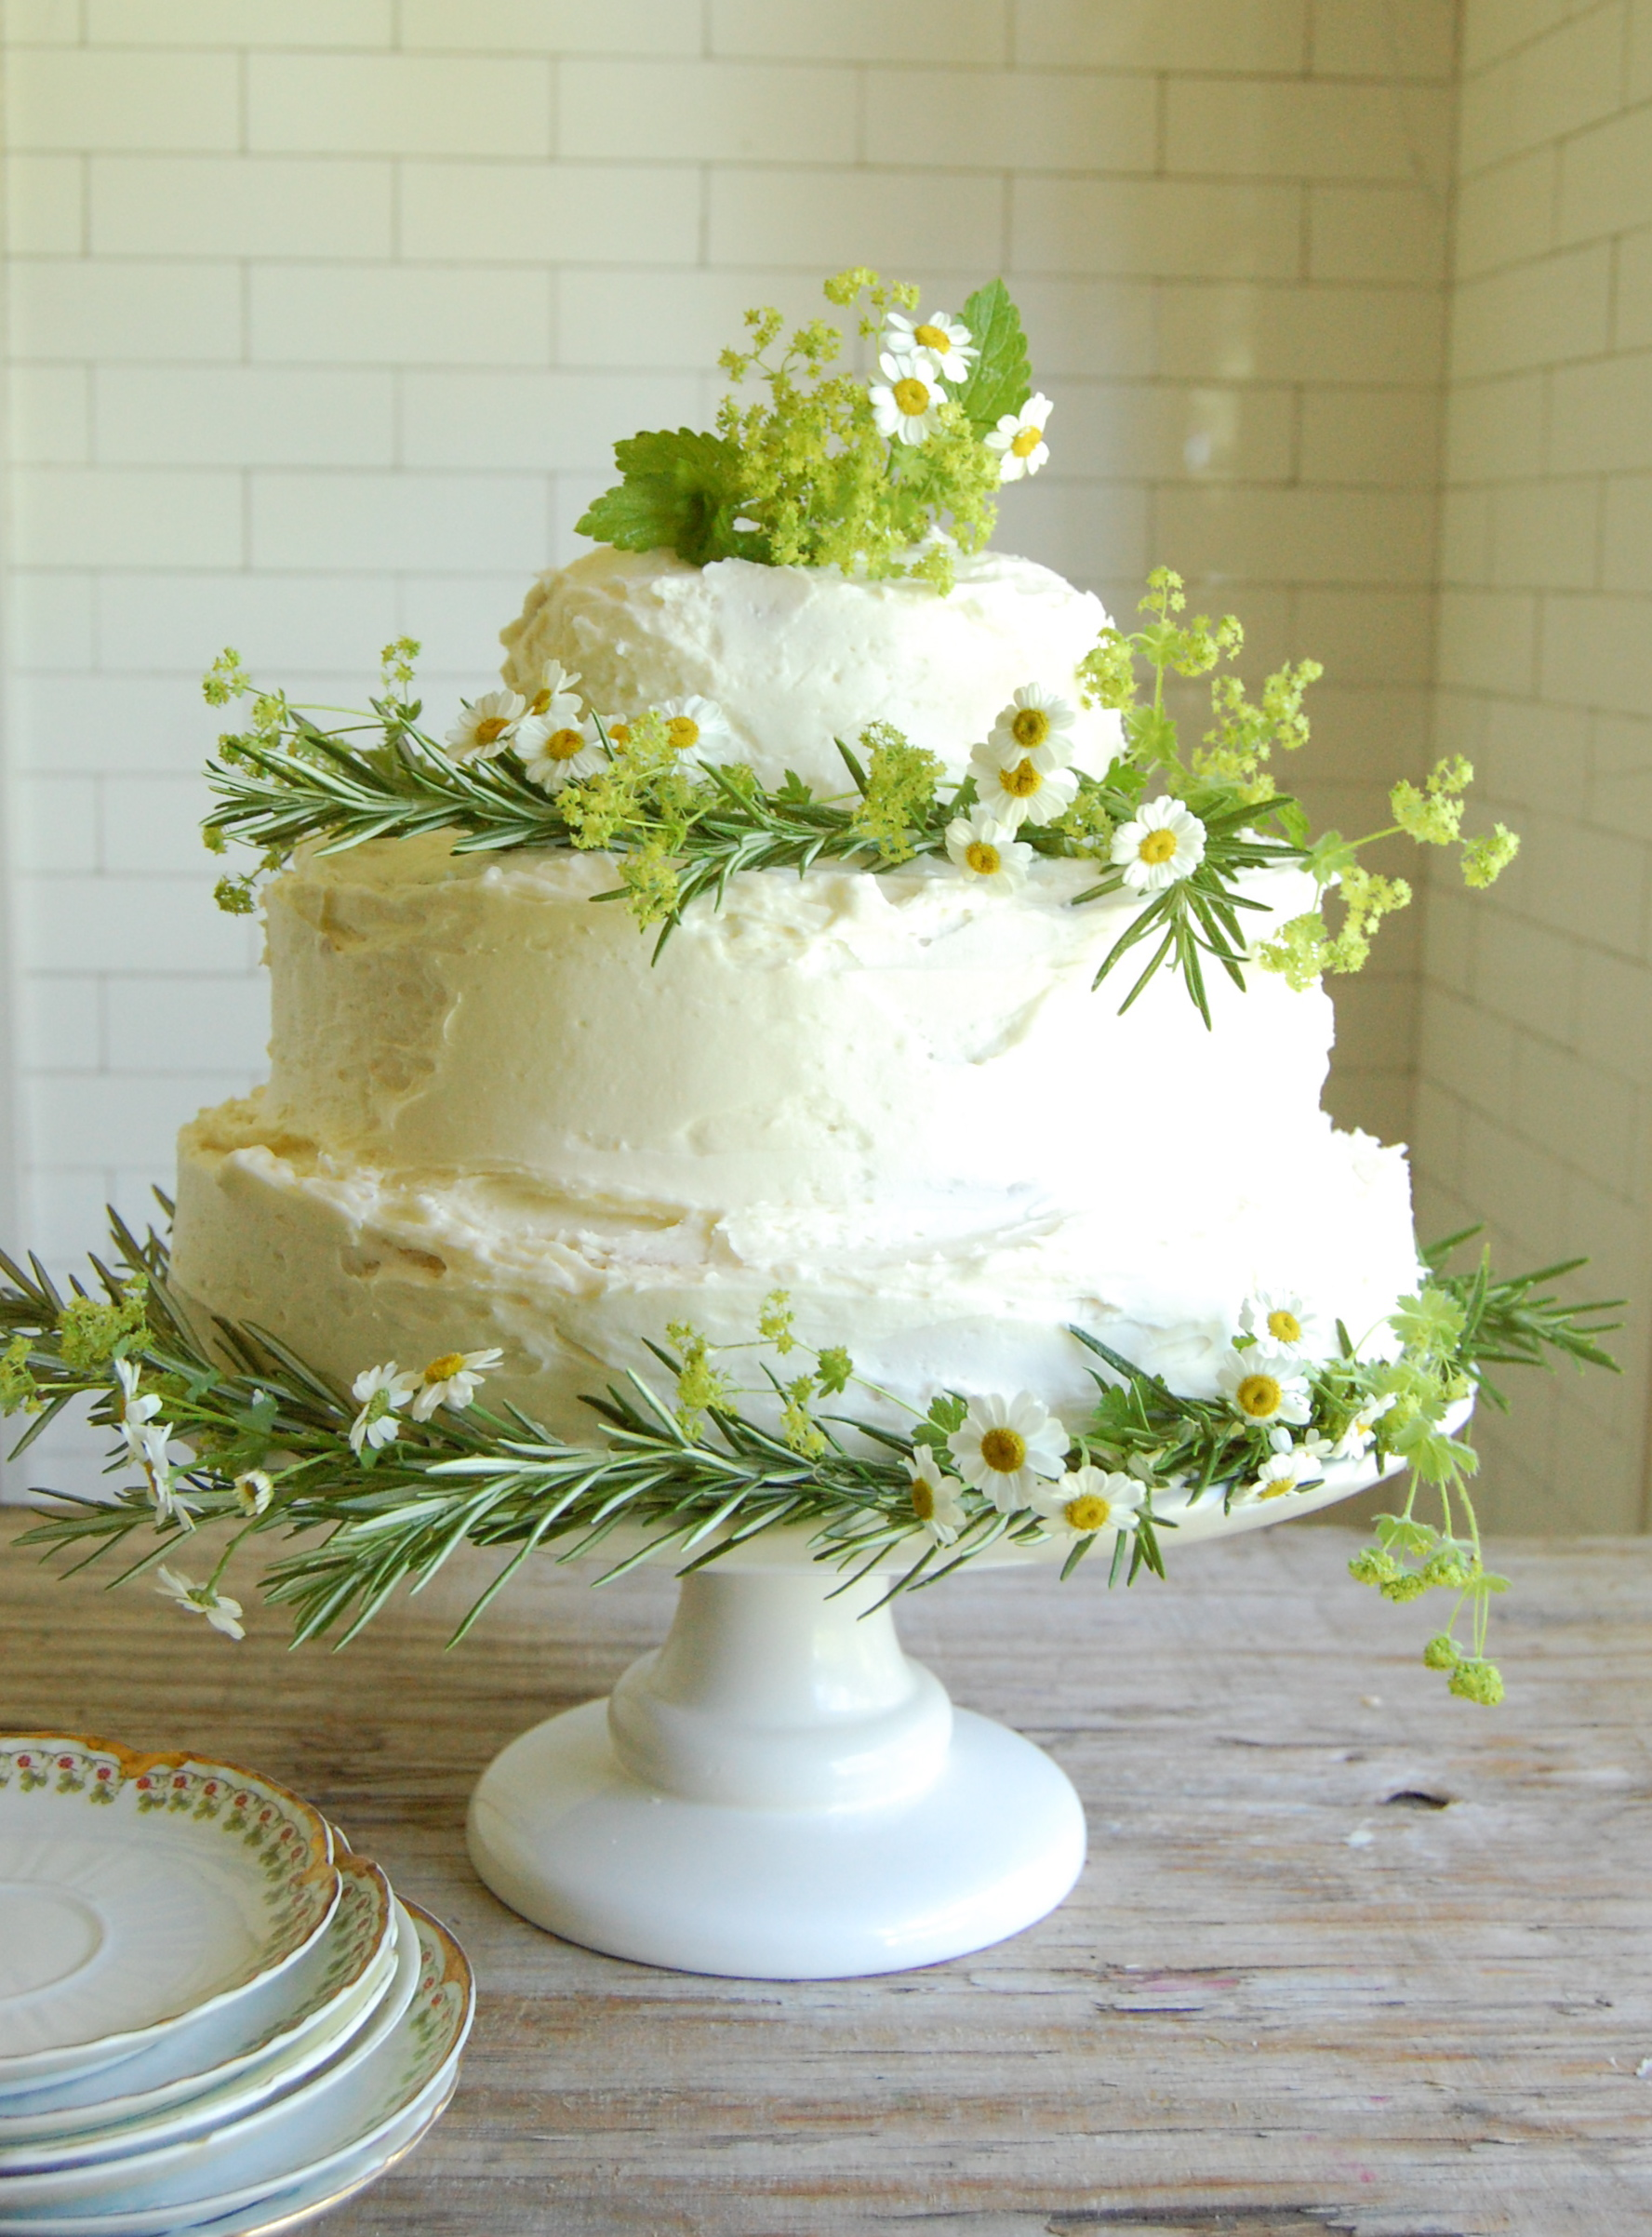 How To Make A Tiered Wedding Cake